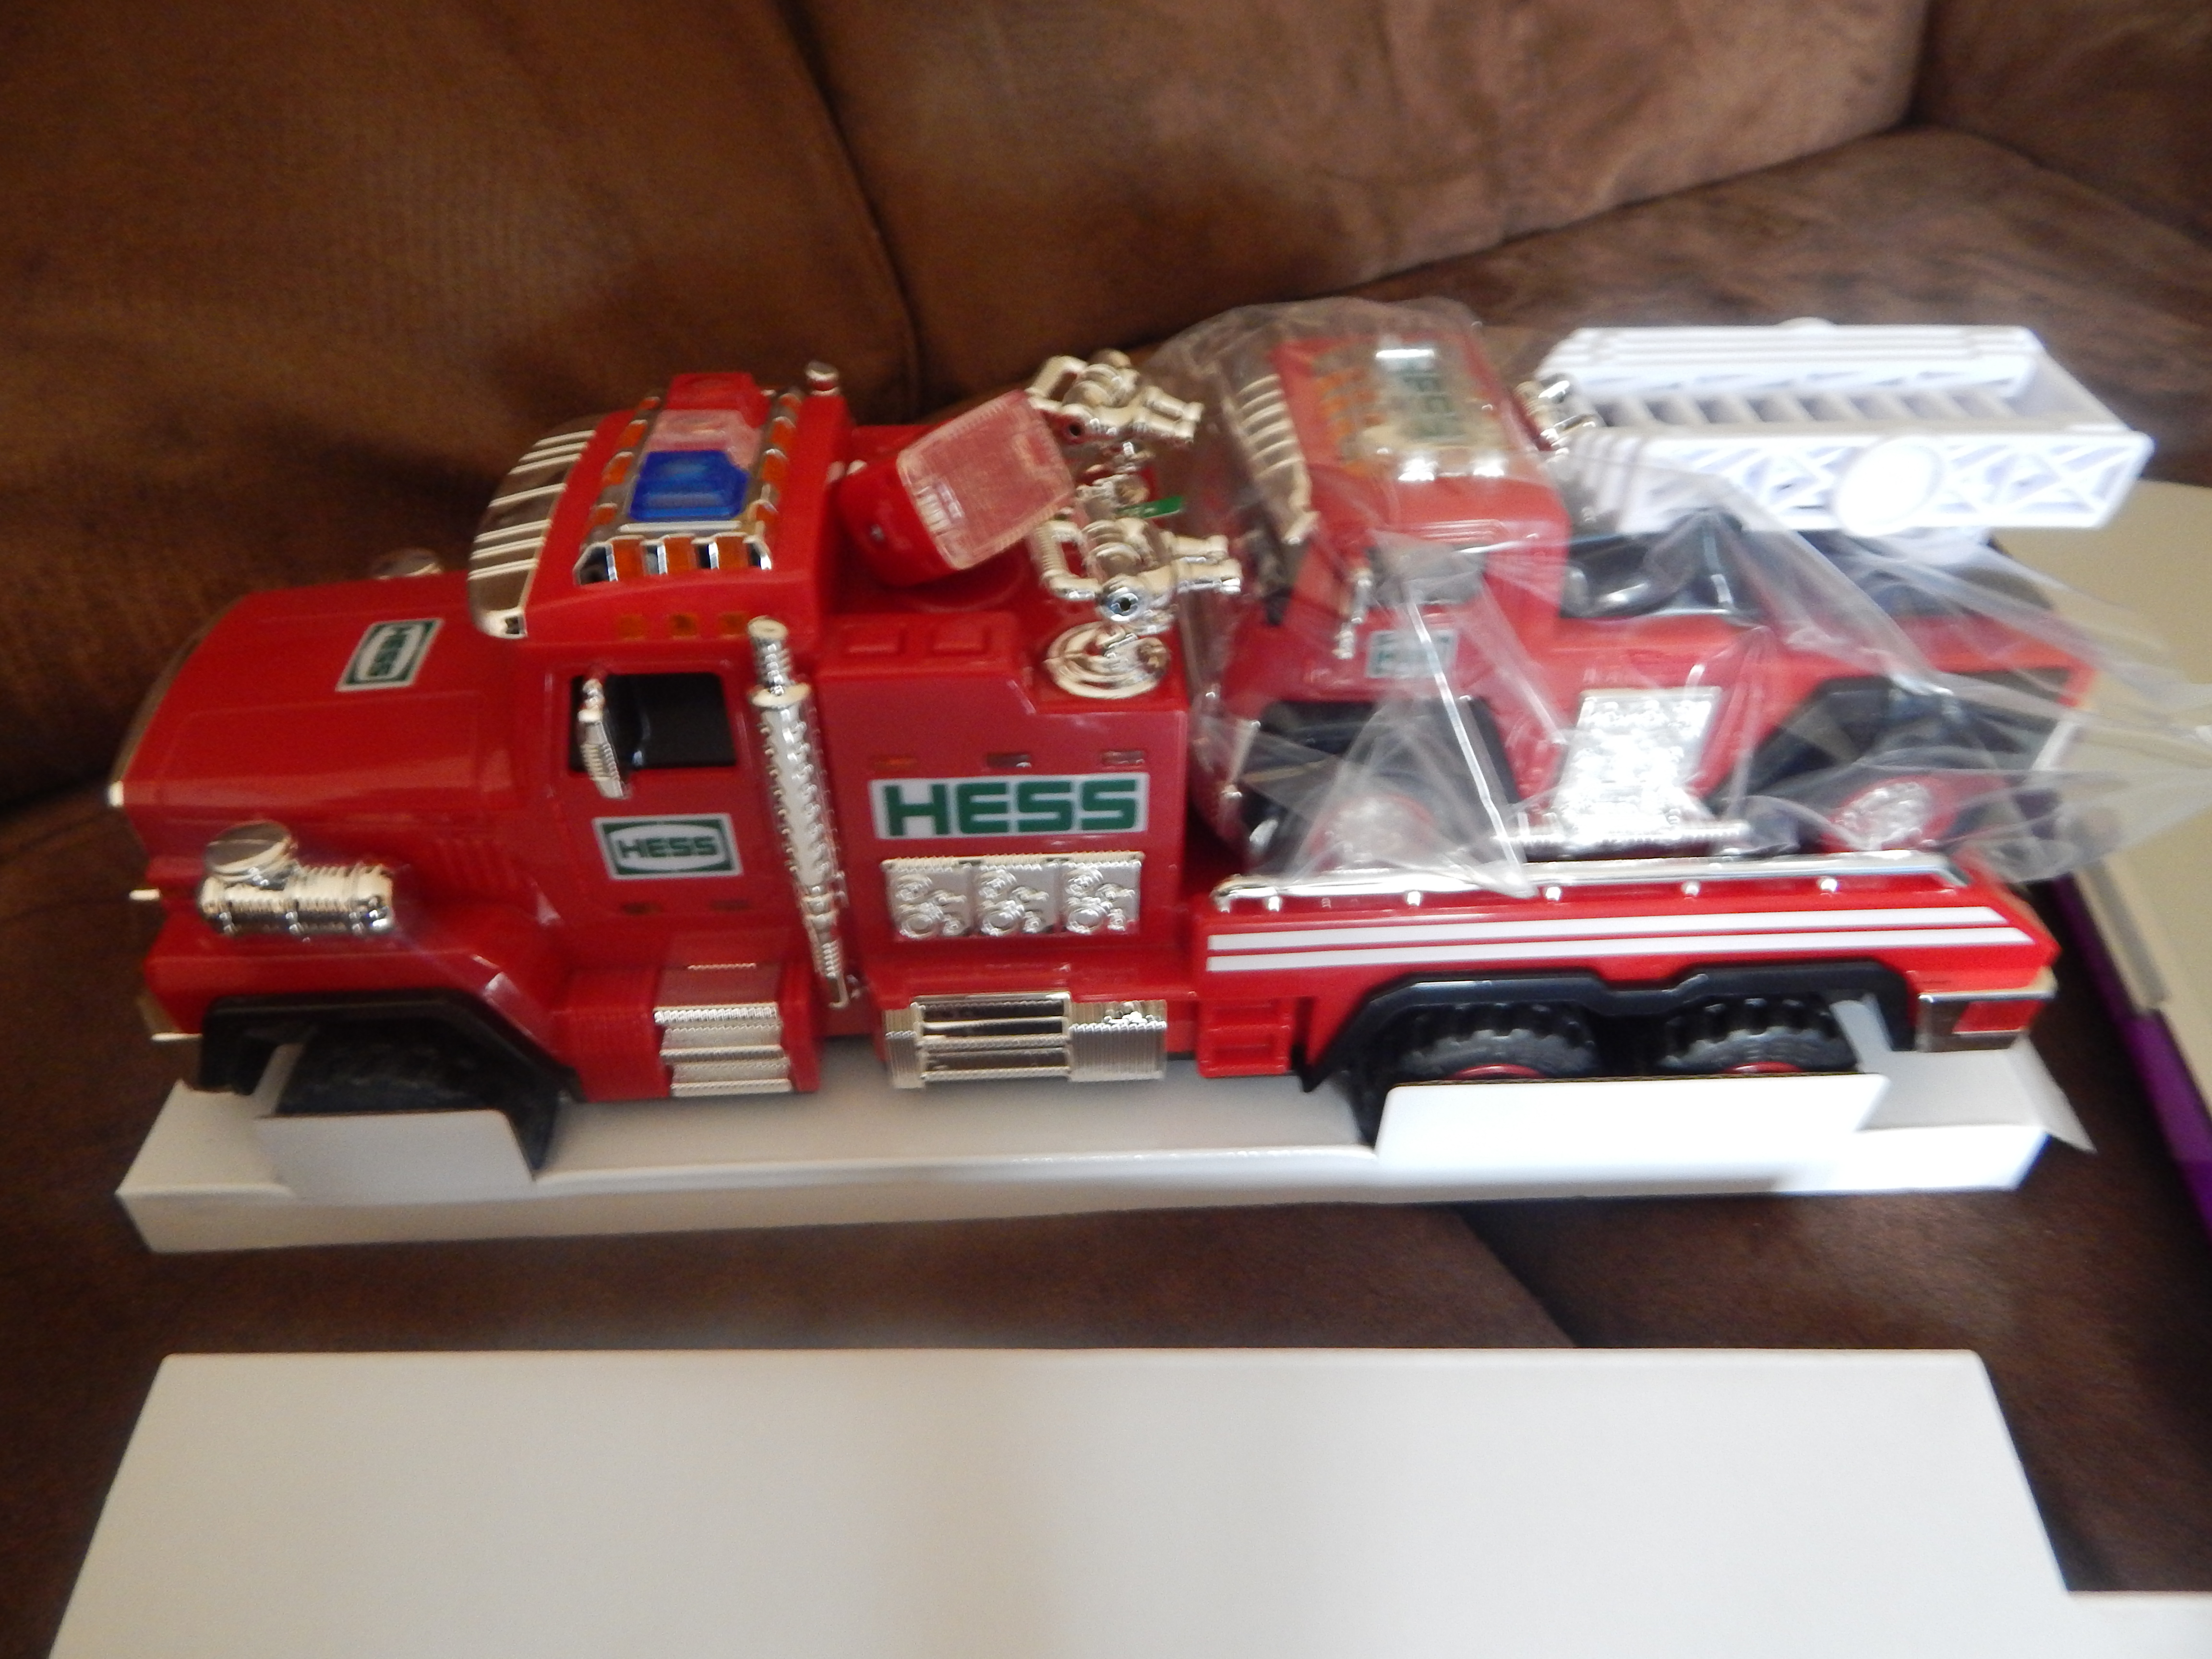 2015 Hess Toy Truck is The Best Yet - No Time Mommy